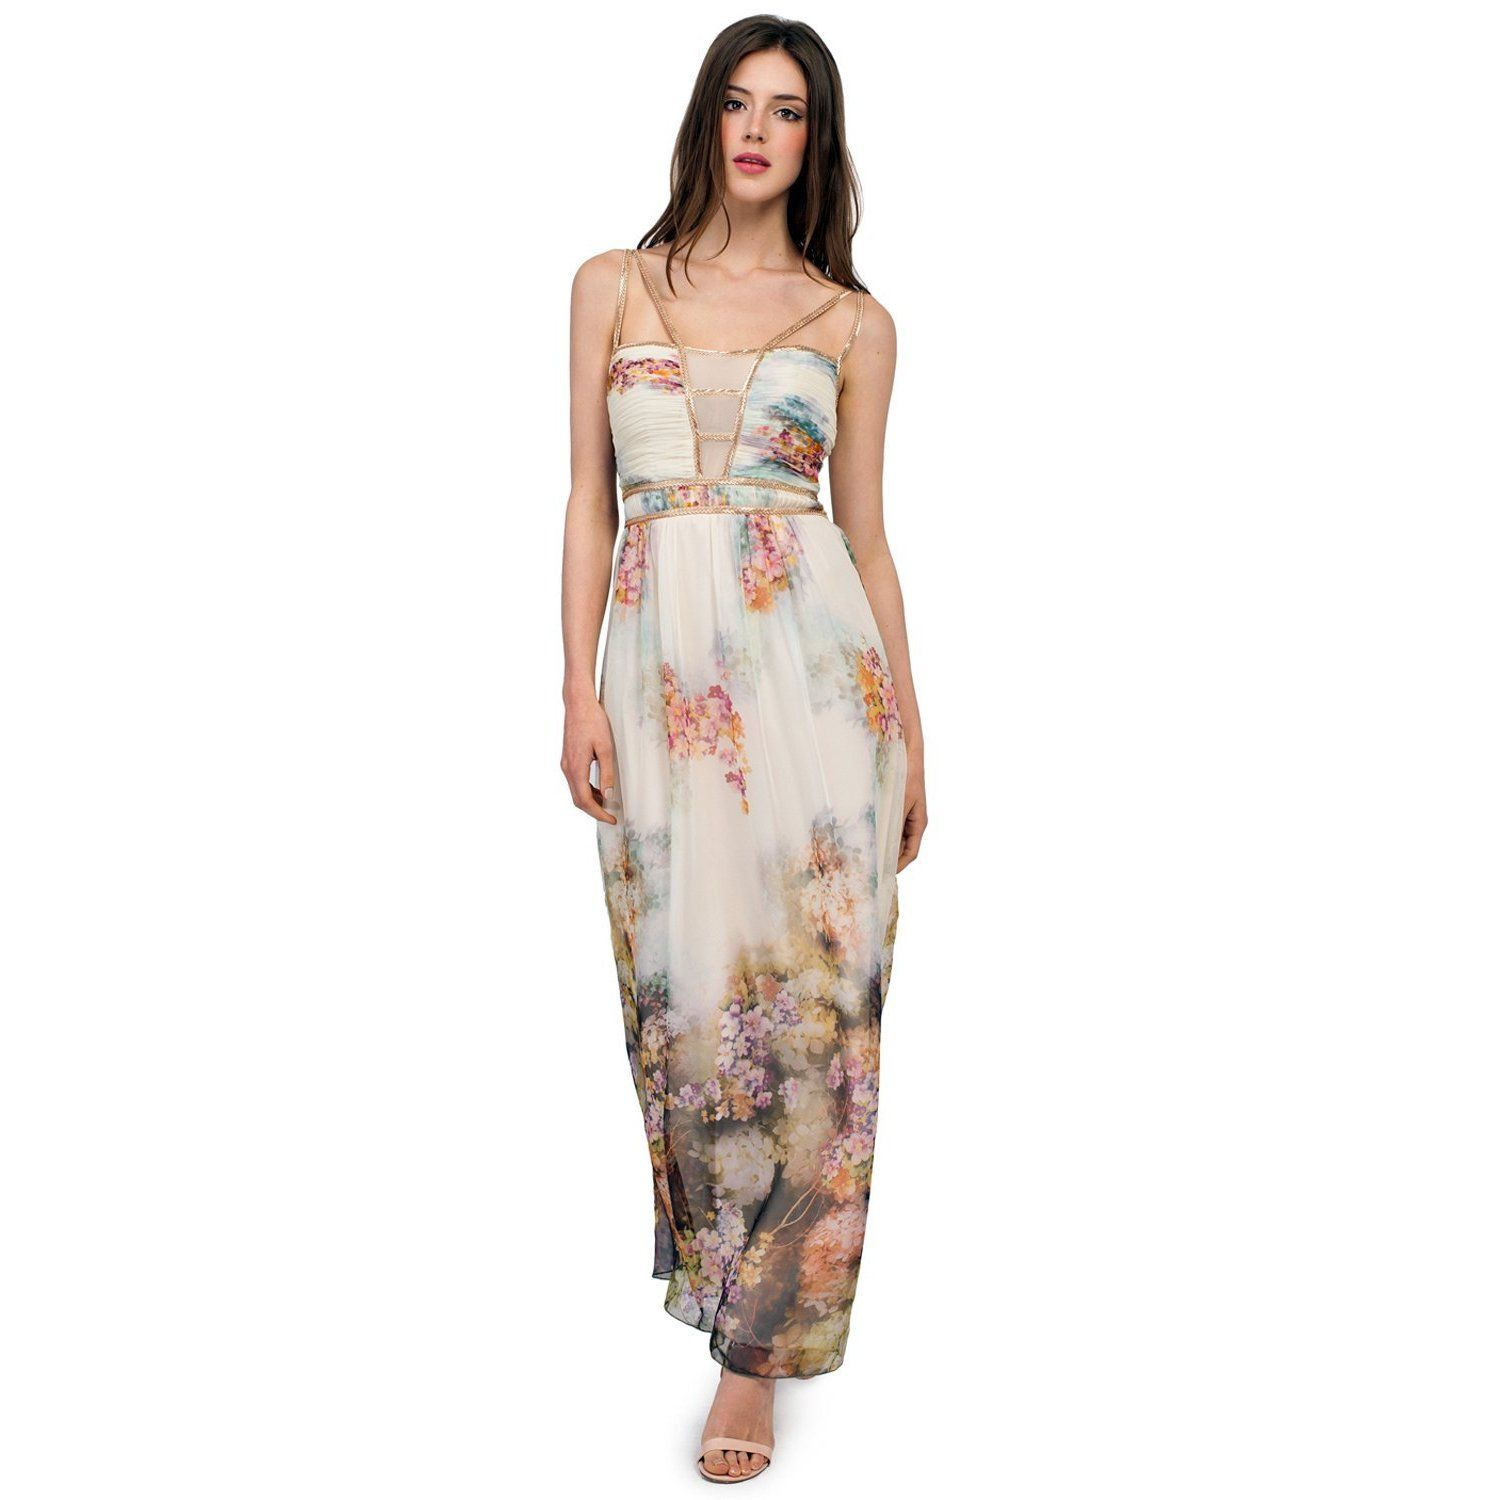 London Dress Company women's Maxi Dress with Floral Print Detailing  | Overstock.com Shopping - The Best Deals on Evening & Formal Dresses